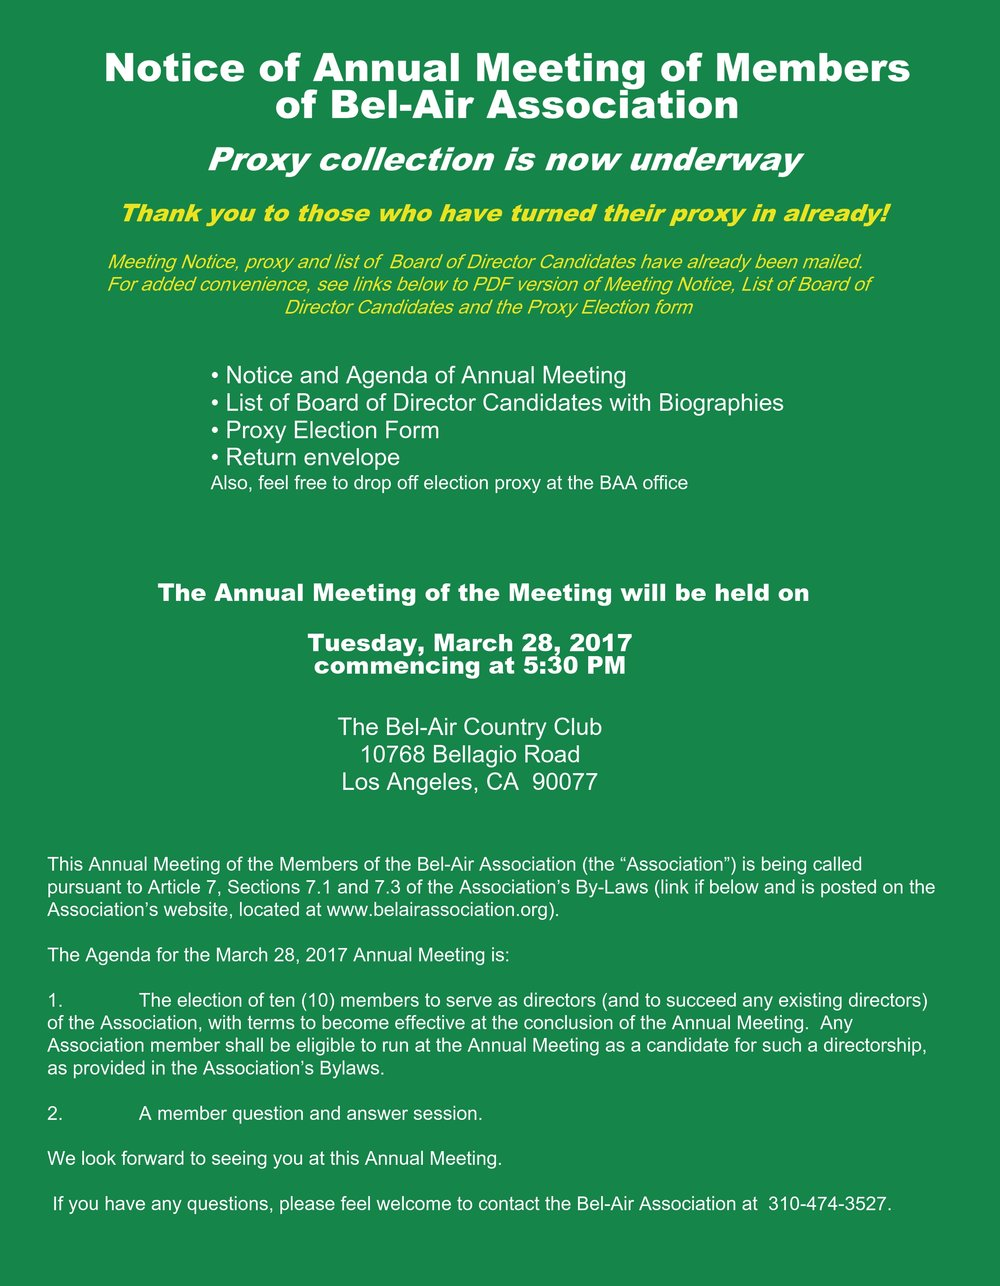 BAA Annual Meeting and Election on March 28th - send in your proxy